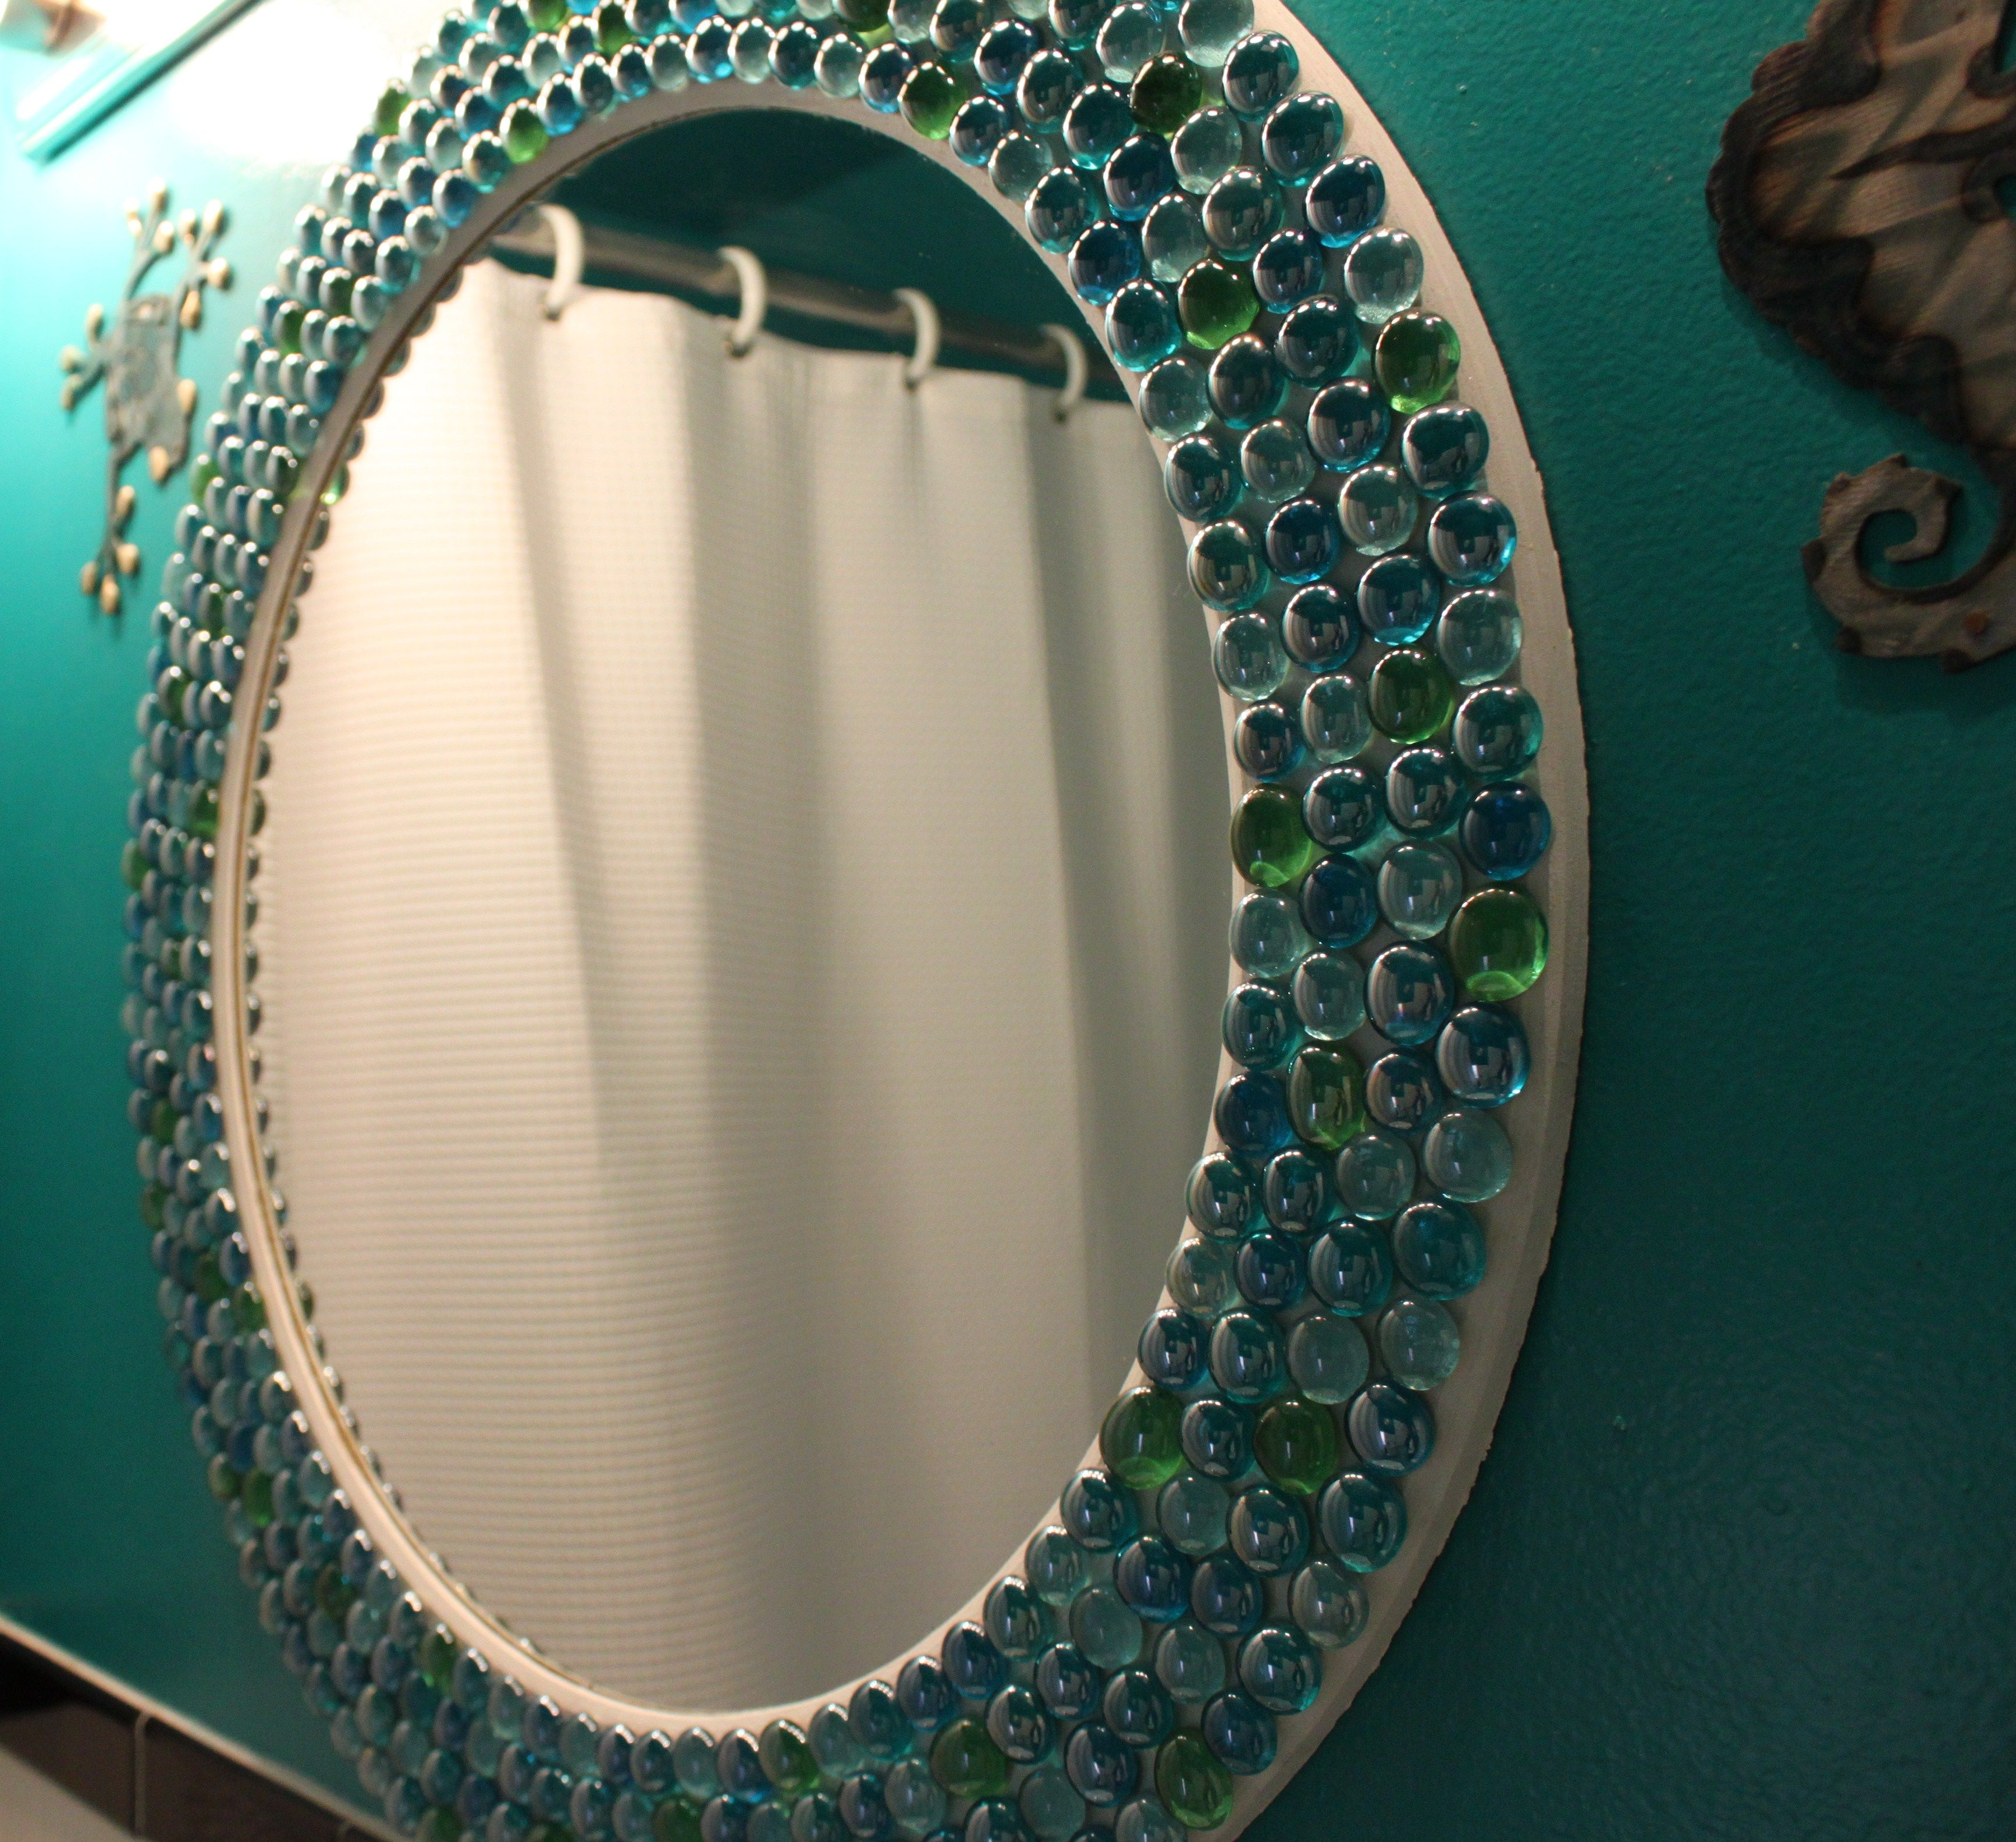 Love this mirror with glass vase filler beads glued on diy love this mirror with glass vase filler beads glued on reviewsmspy